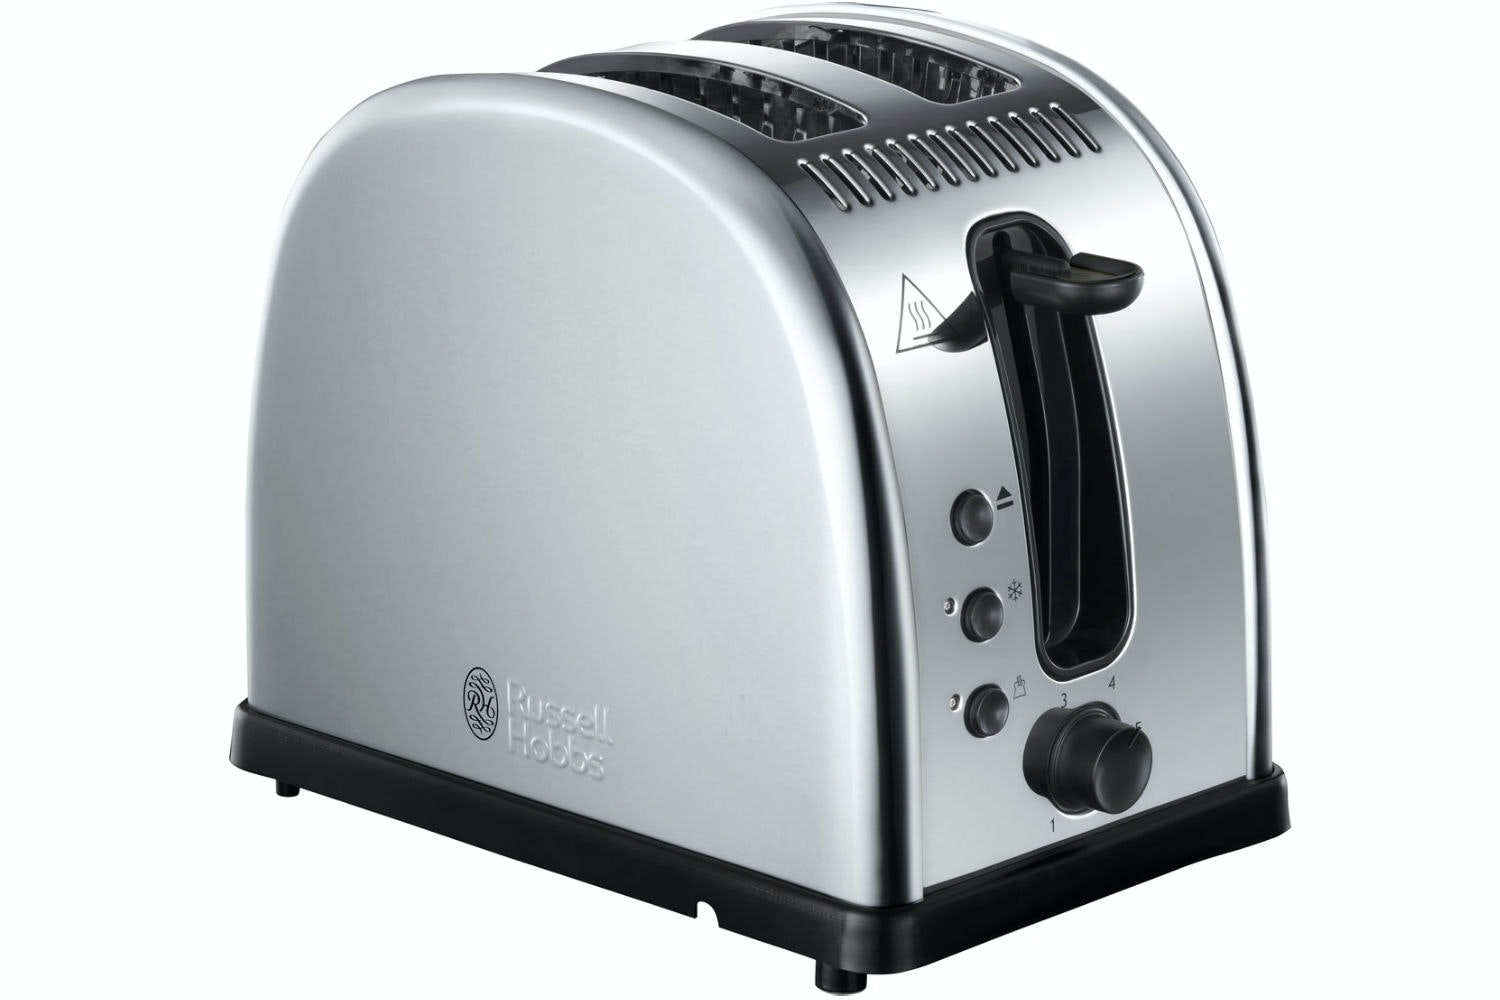 russell-hobbs-legacy-toaster-21290